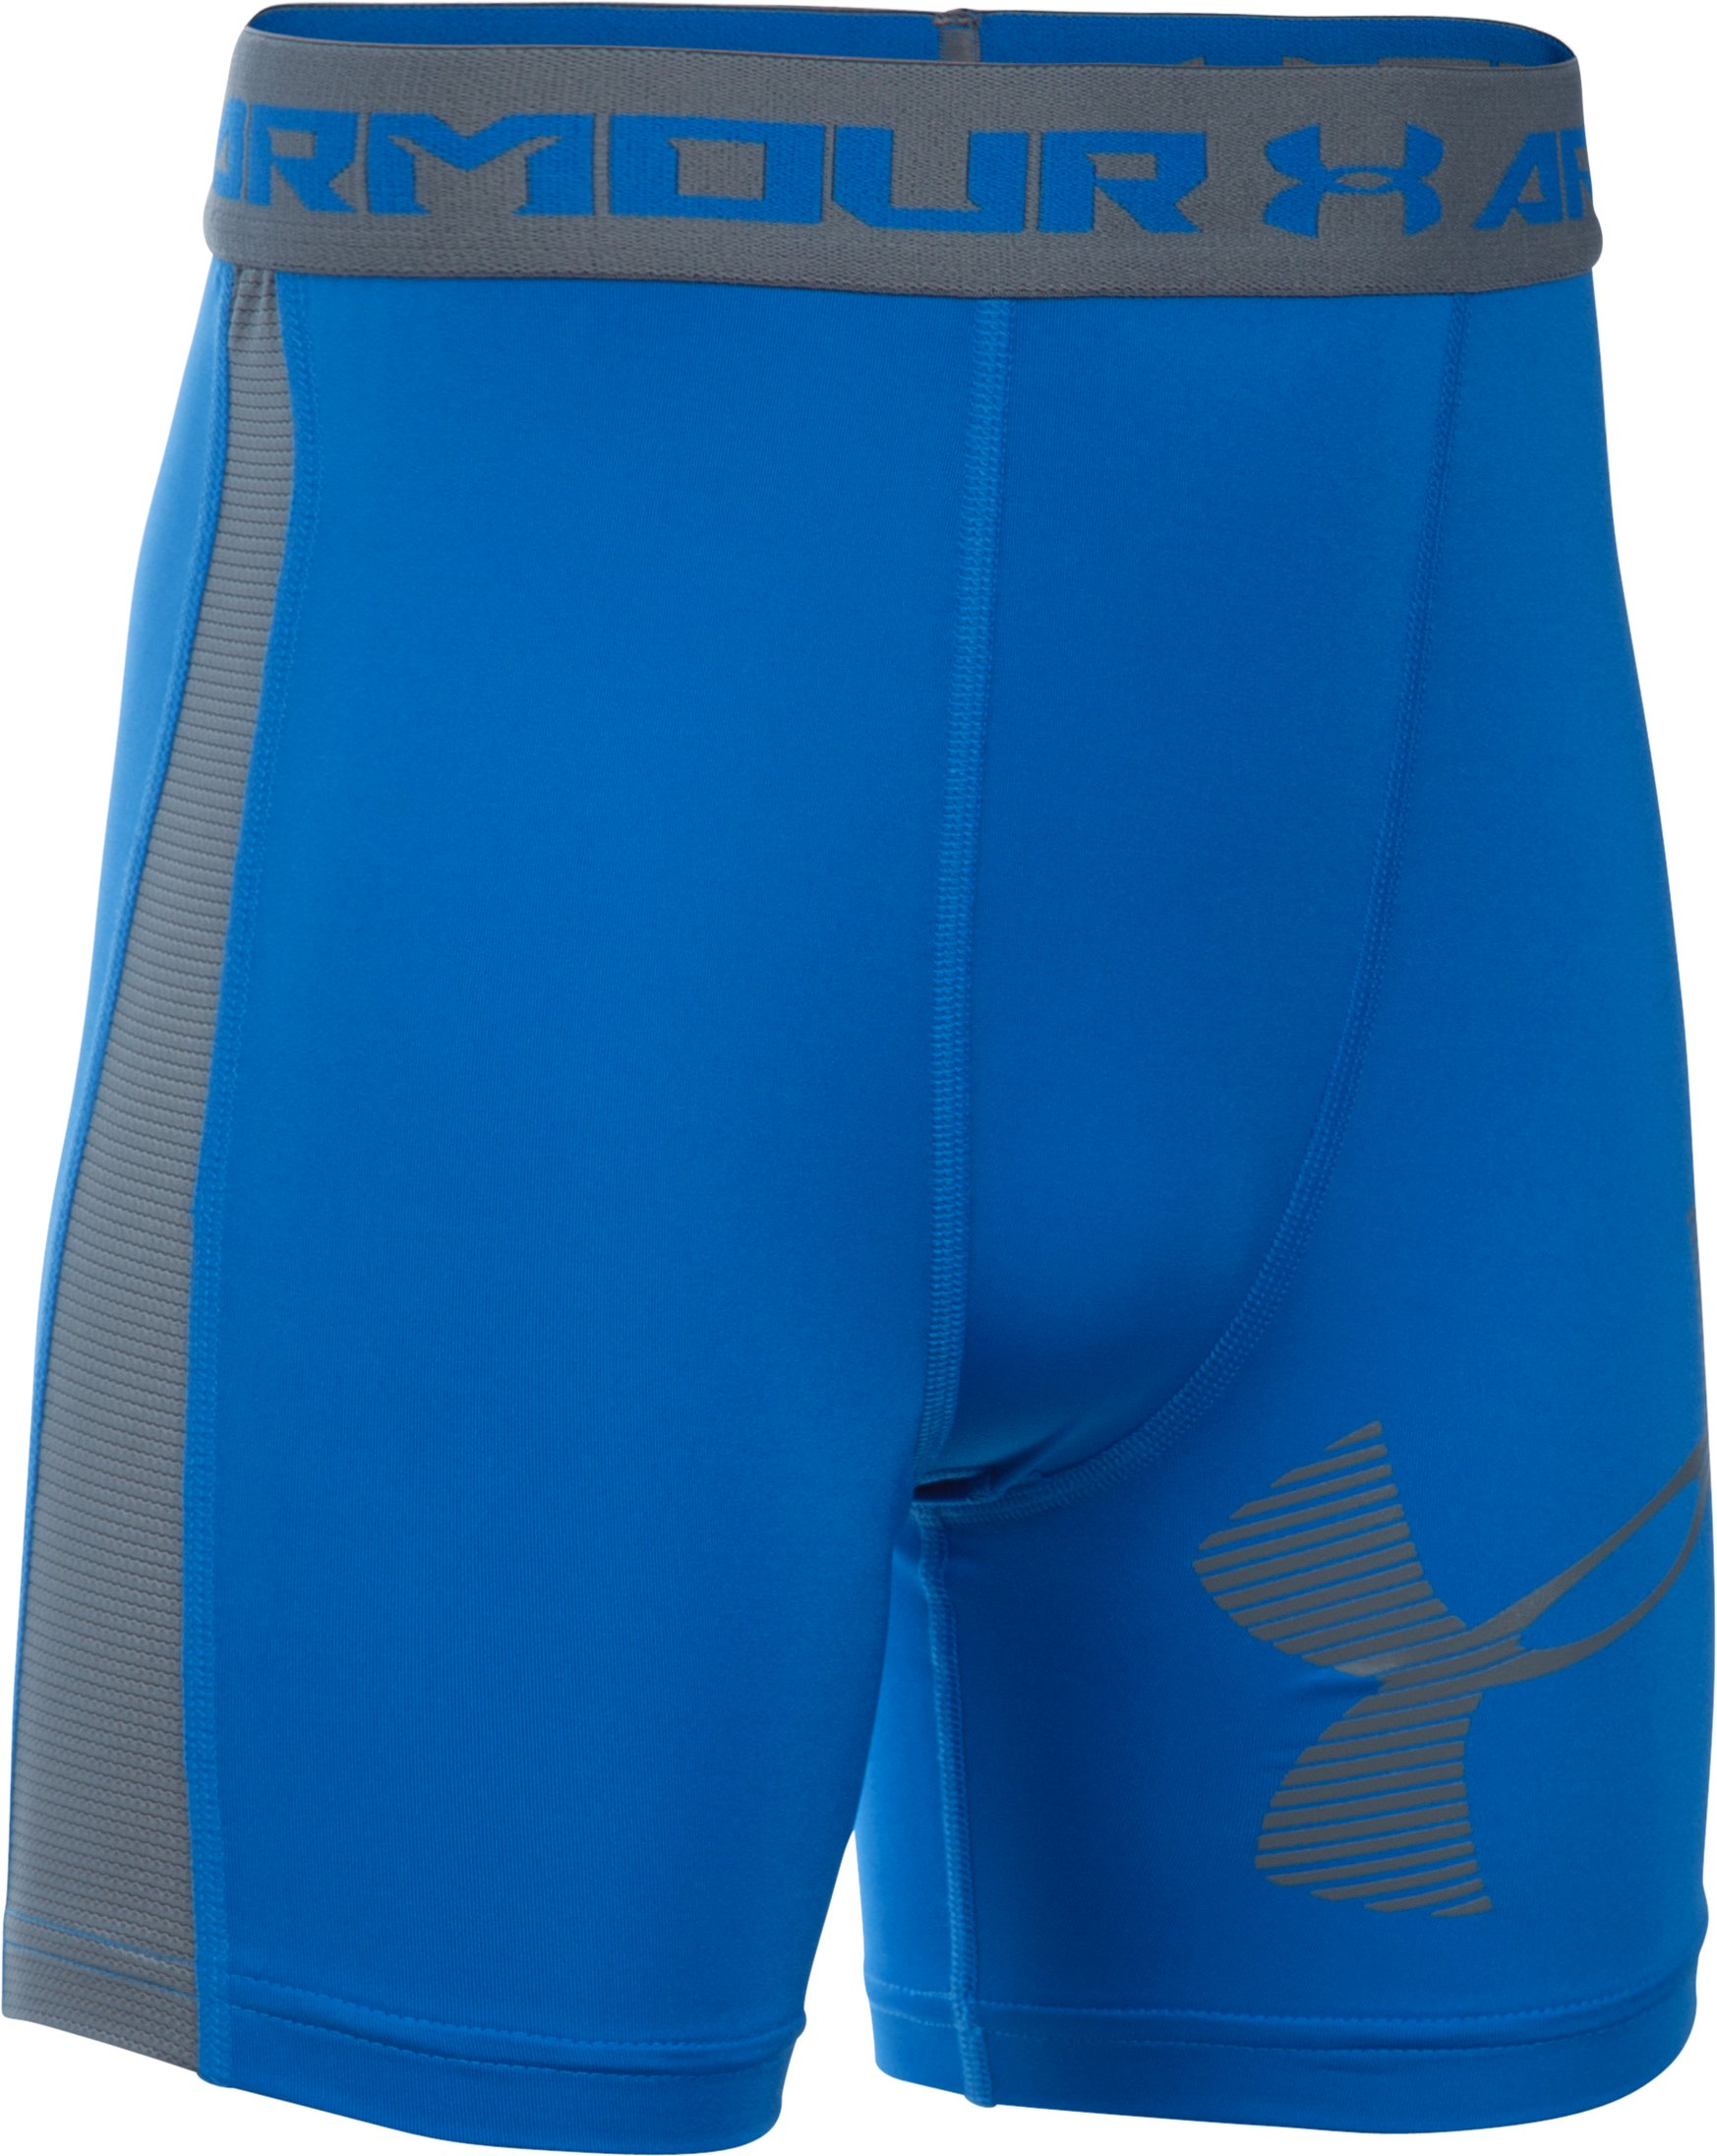 Boys' UA HeatGear® Armour Up Fitted–Mid, ULTRA BLUE, zoomed image